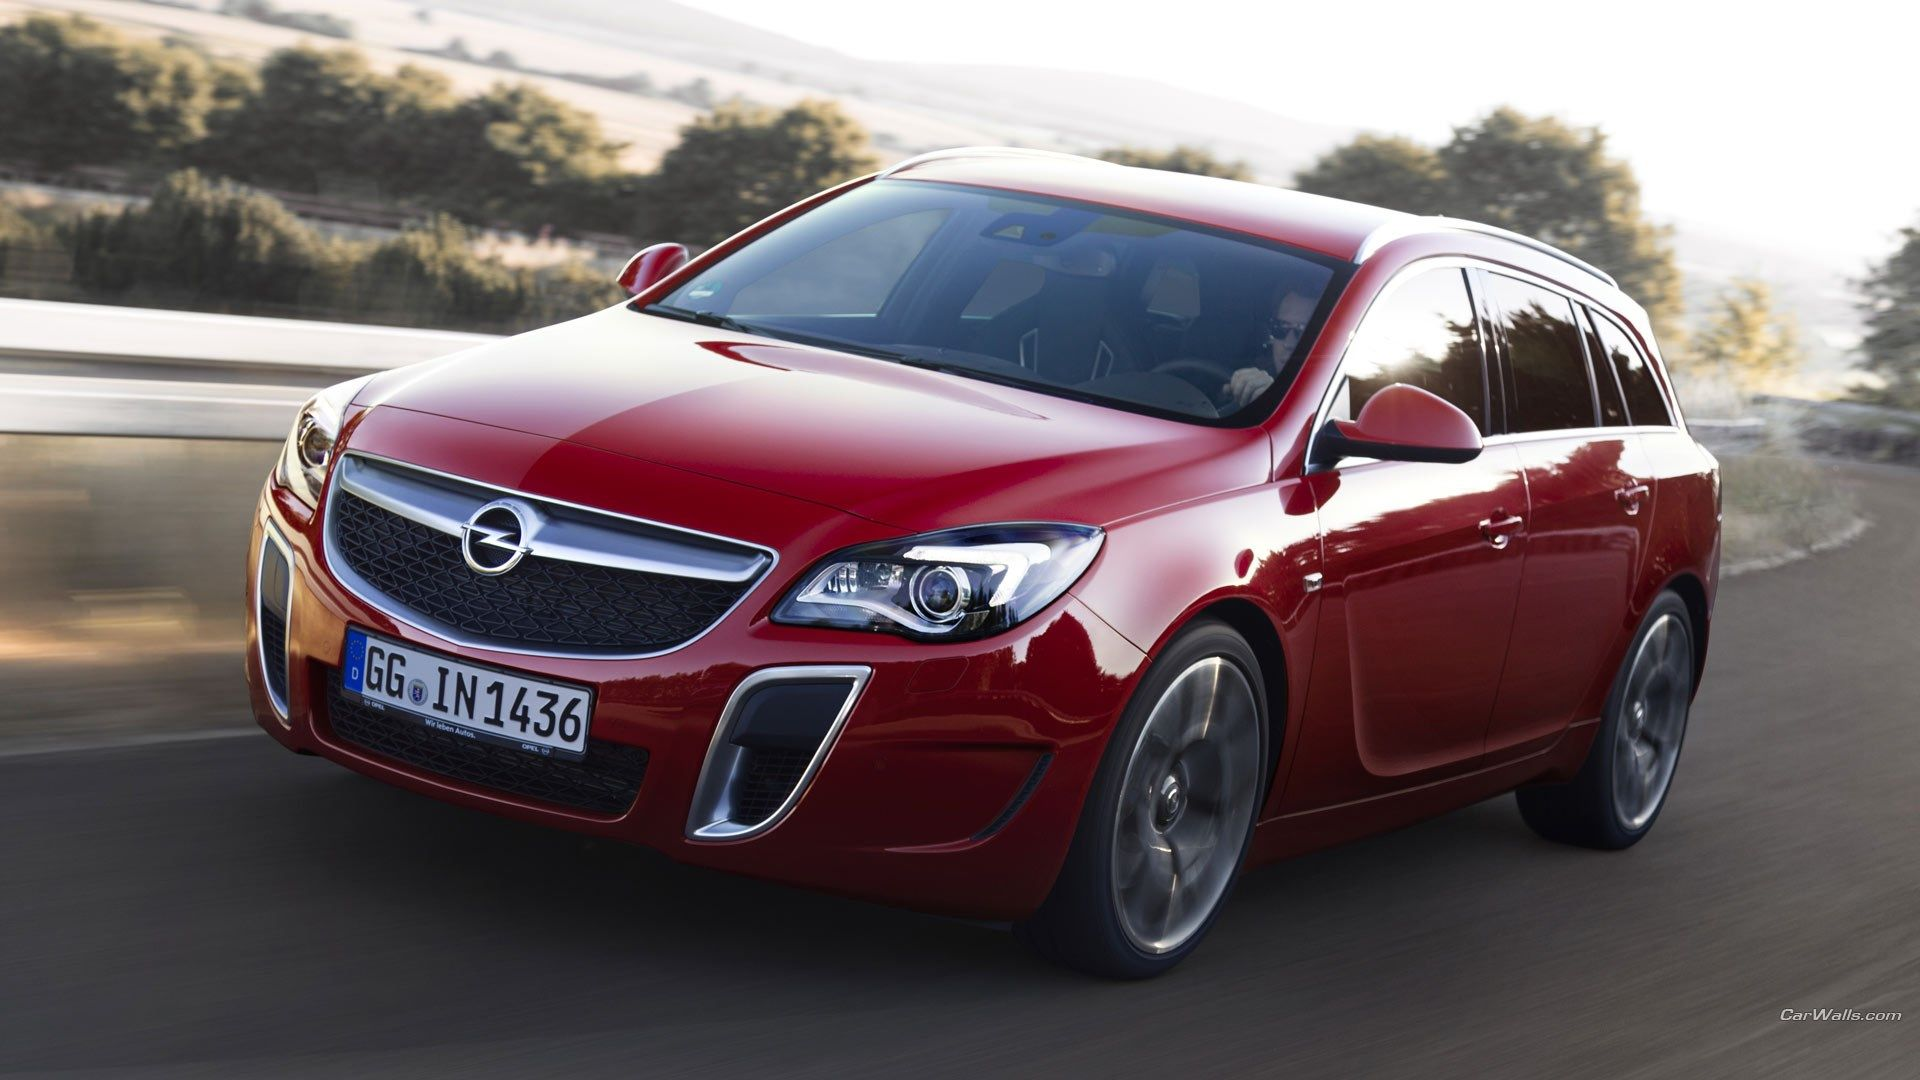 Lovely 1920x1080px 2014 Opel Insignia Opc Sports Tourer Wallpaper For Mac  Computers By Stewart Bush